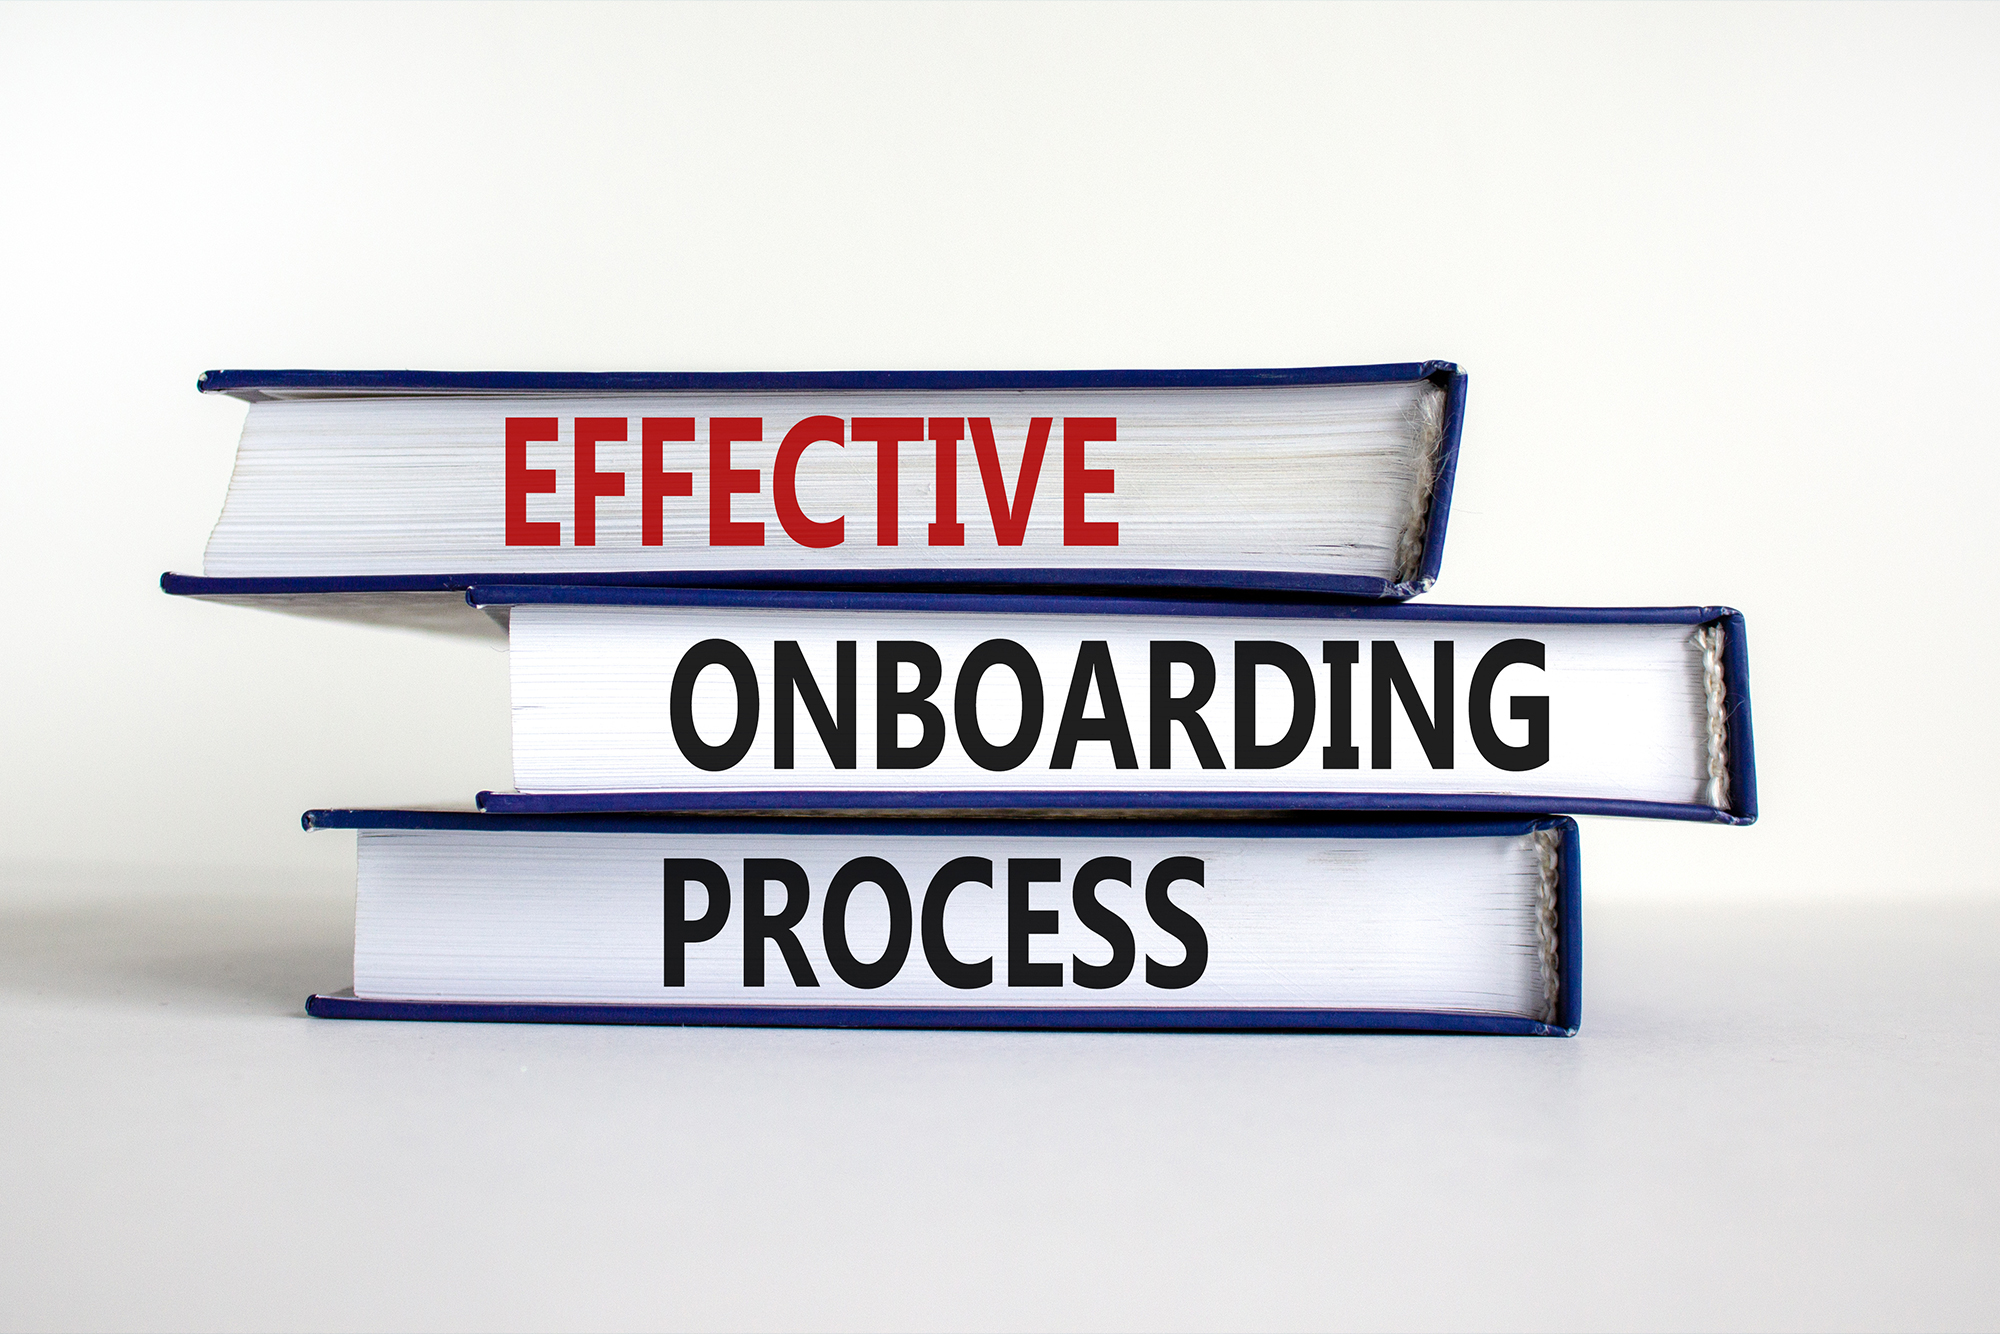 Books stacked with text - Effective, Onboarding, Process